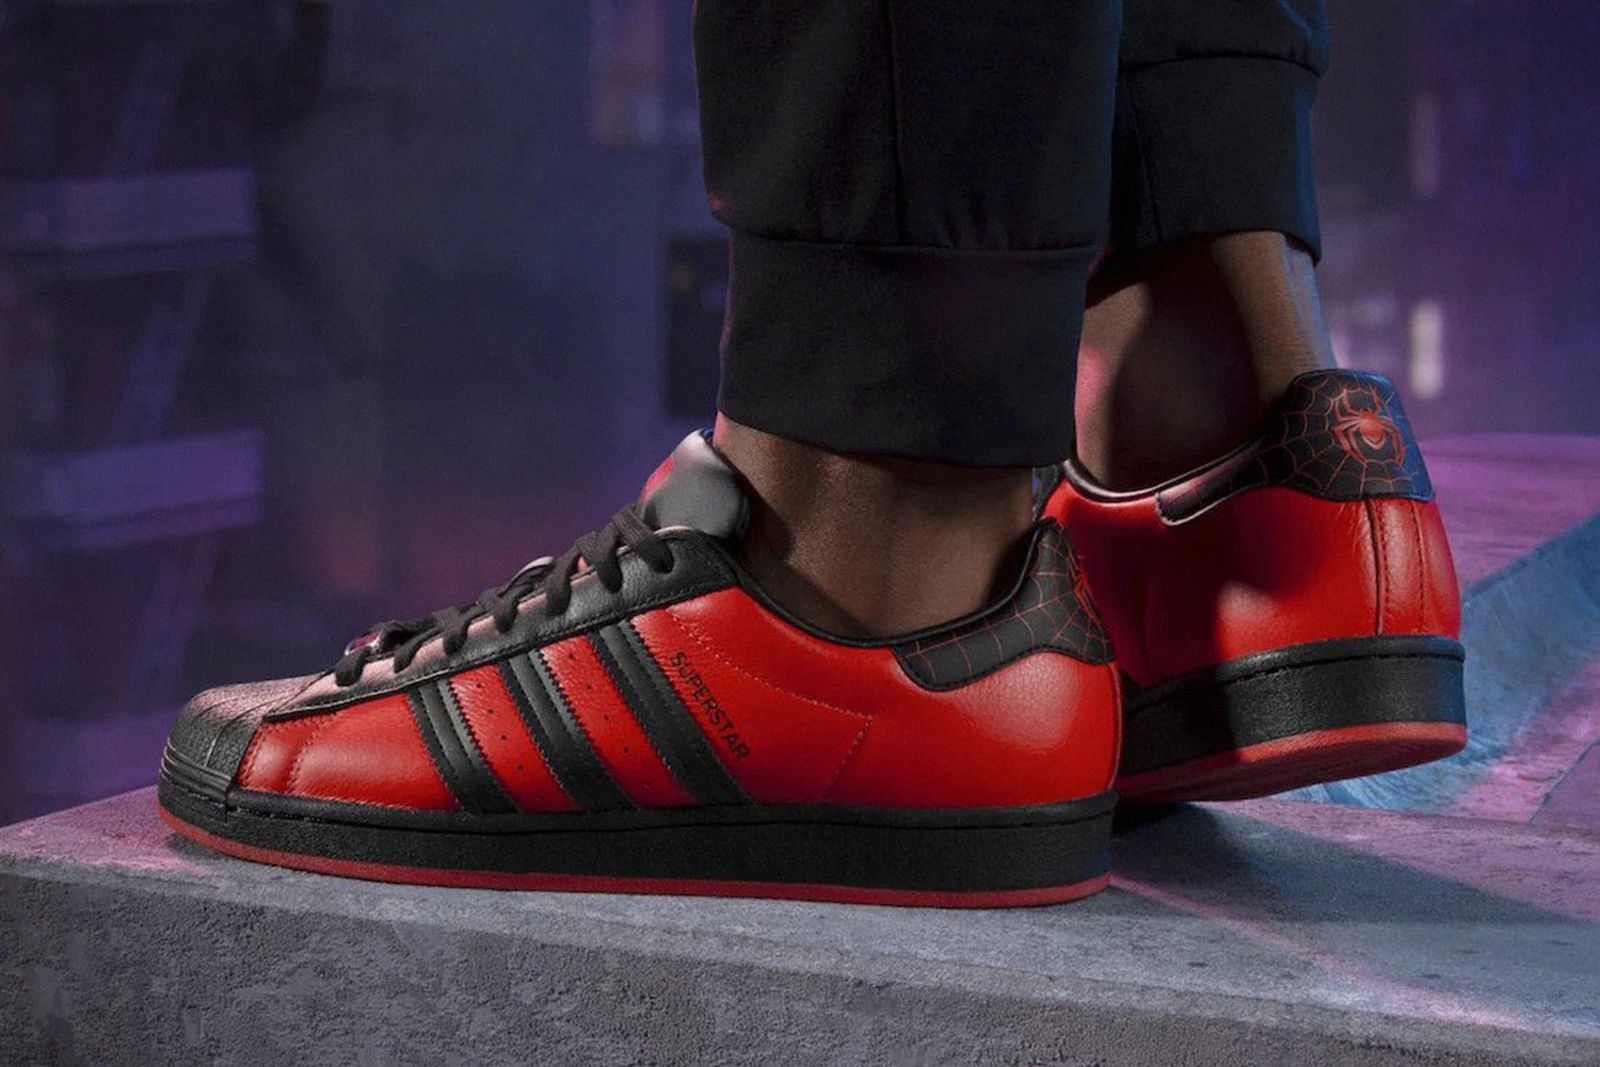 marvel-playstation-adidas-superstar-miles-morales-release-date-price-05